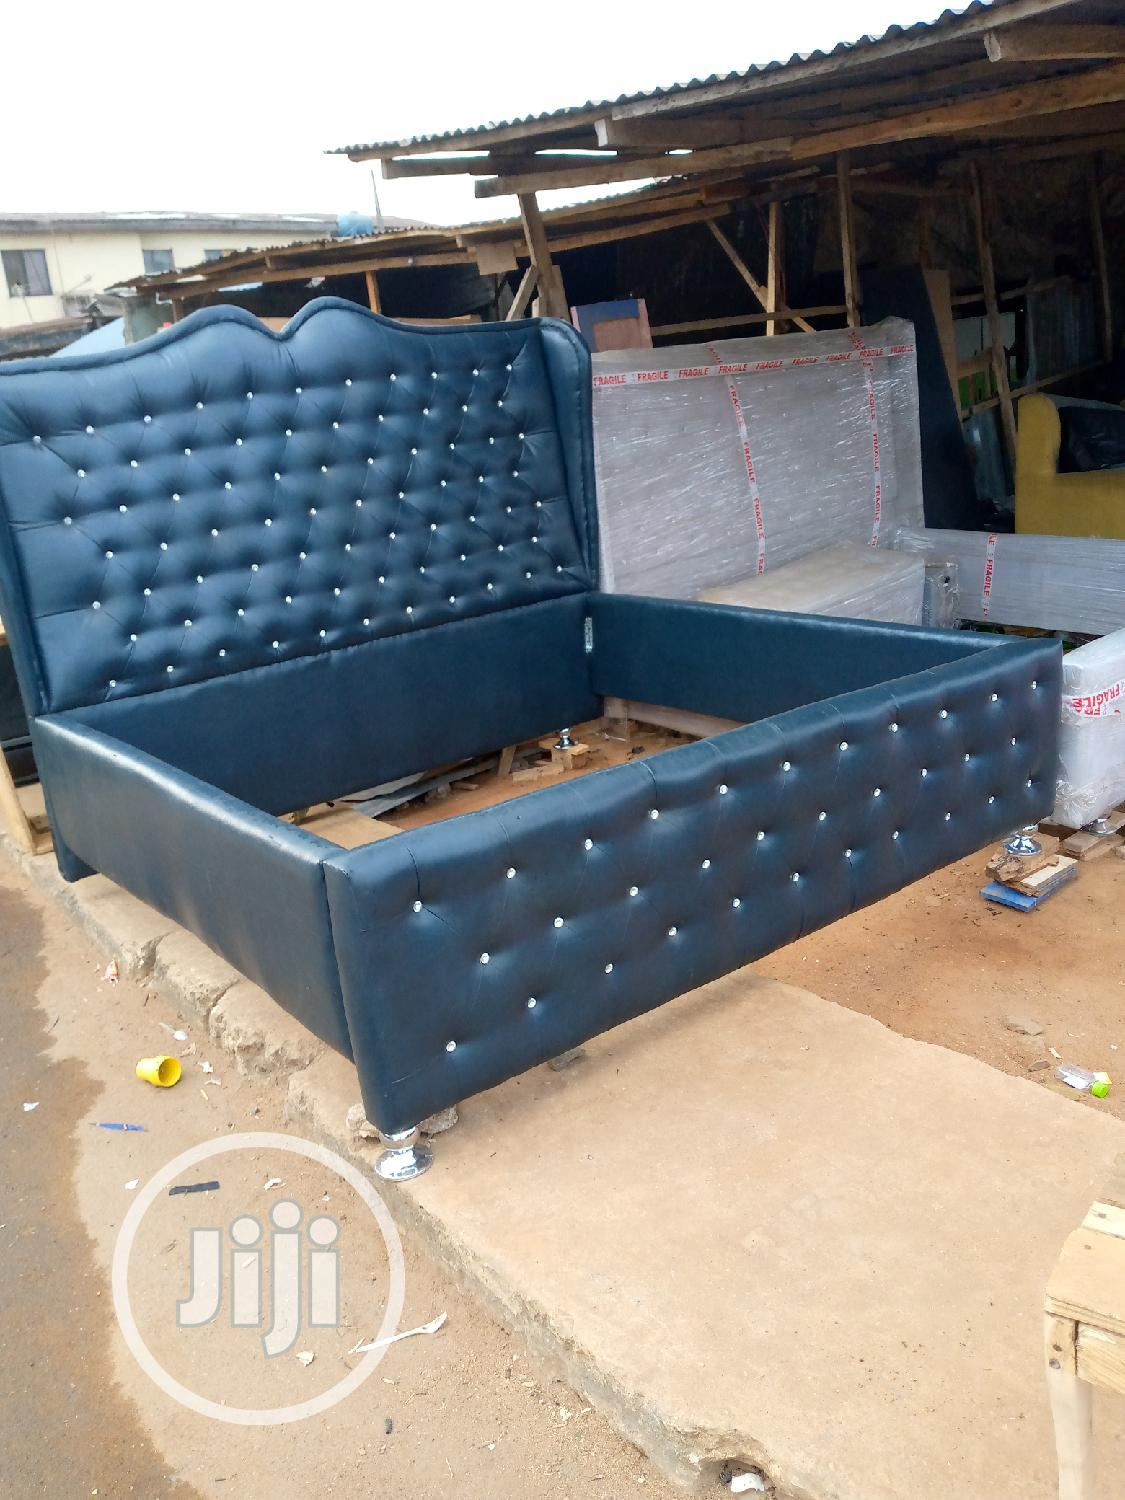 6by6 Bed Made of Stock Leather